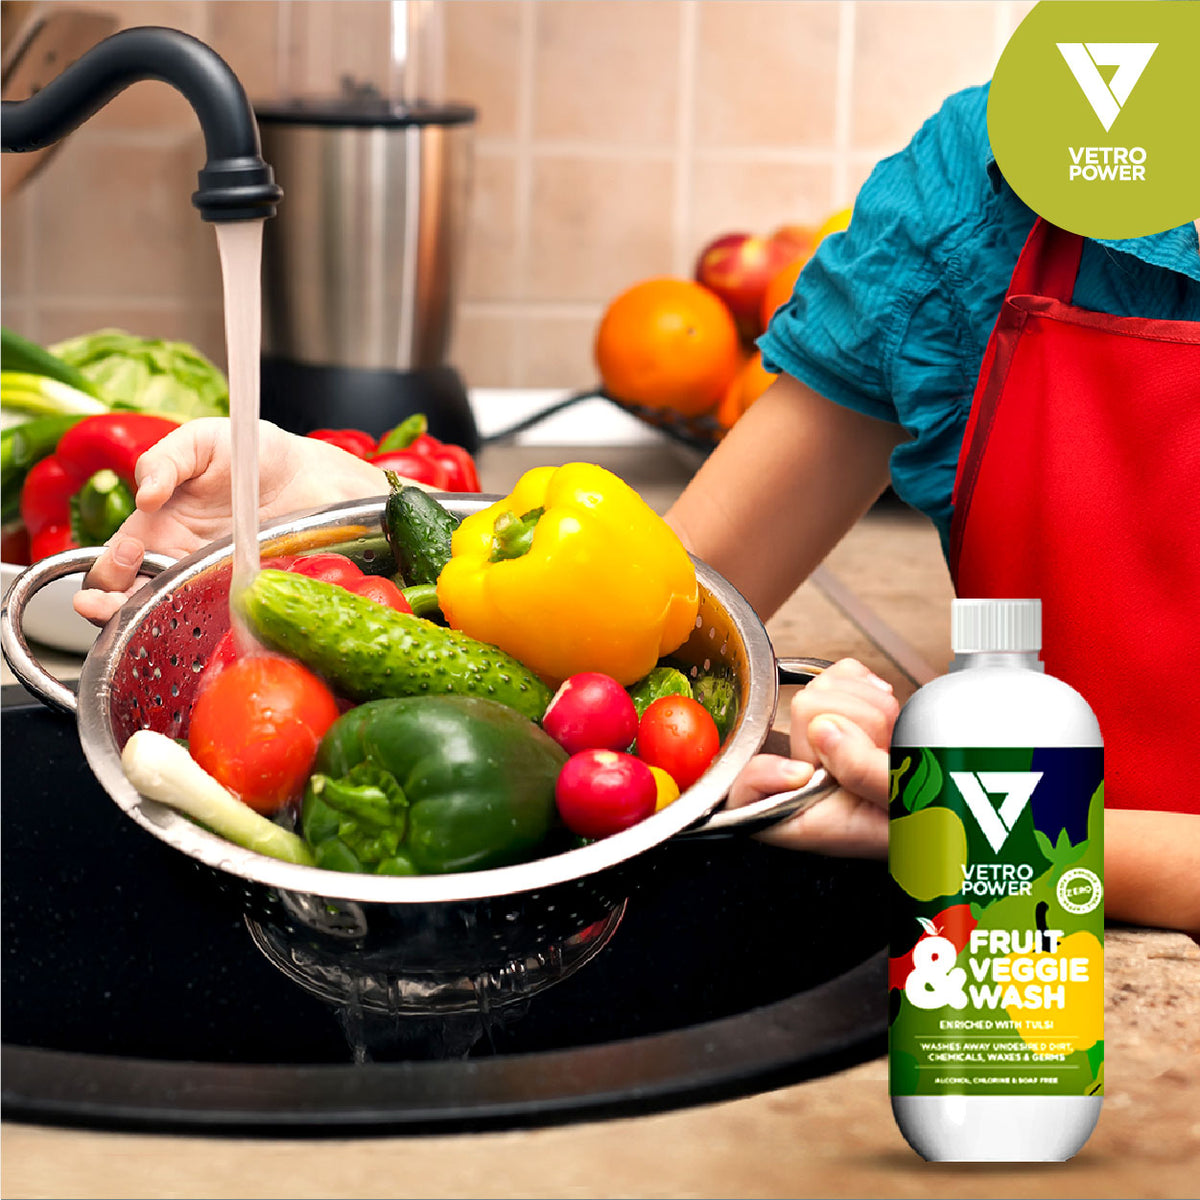 Vetro Power Fruit & Veggie Wash